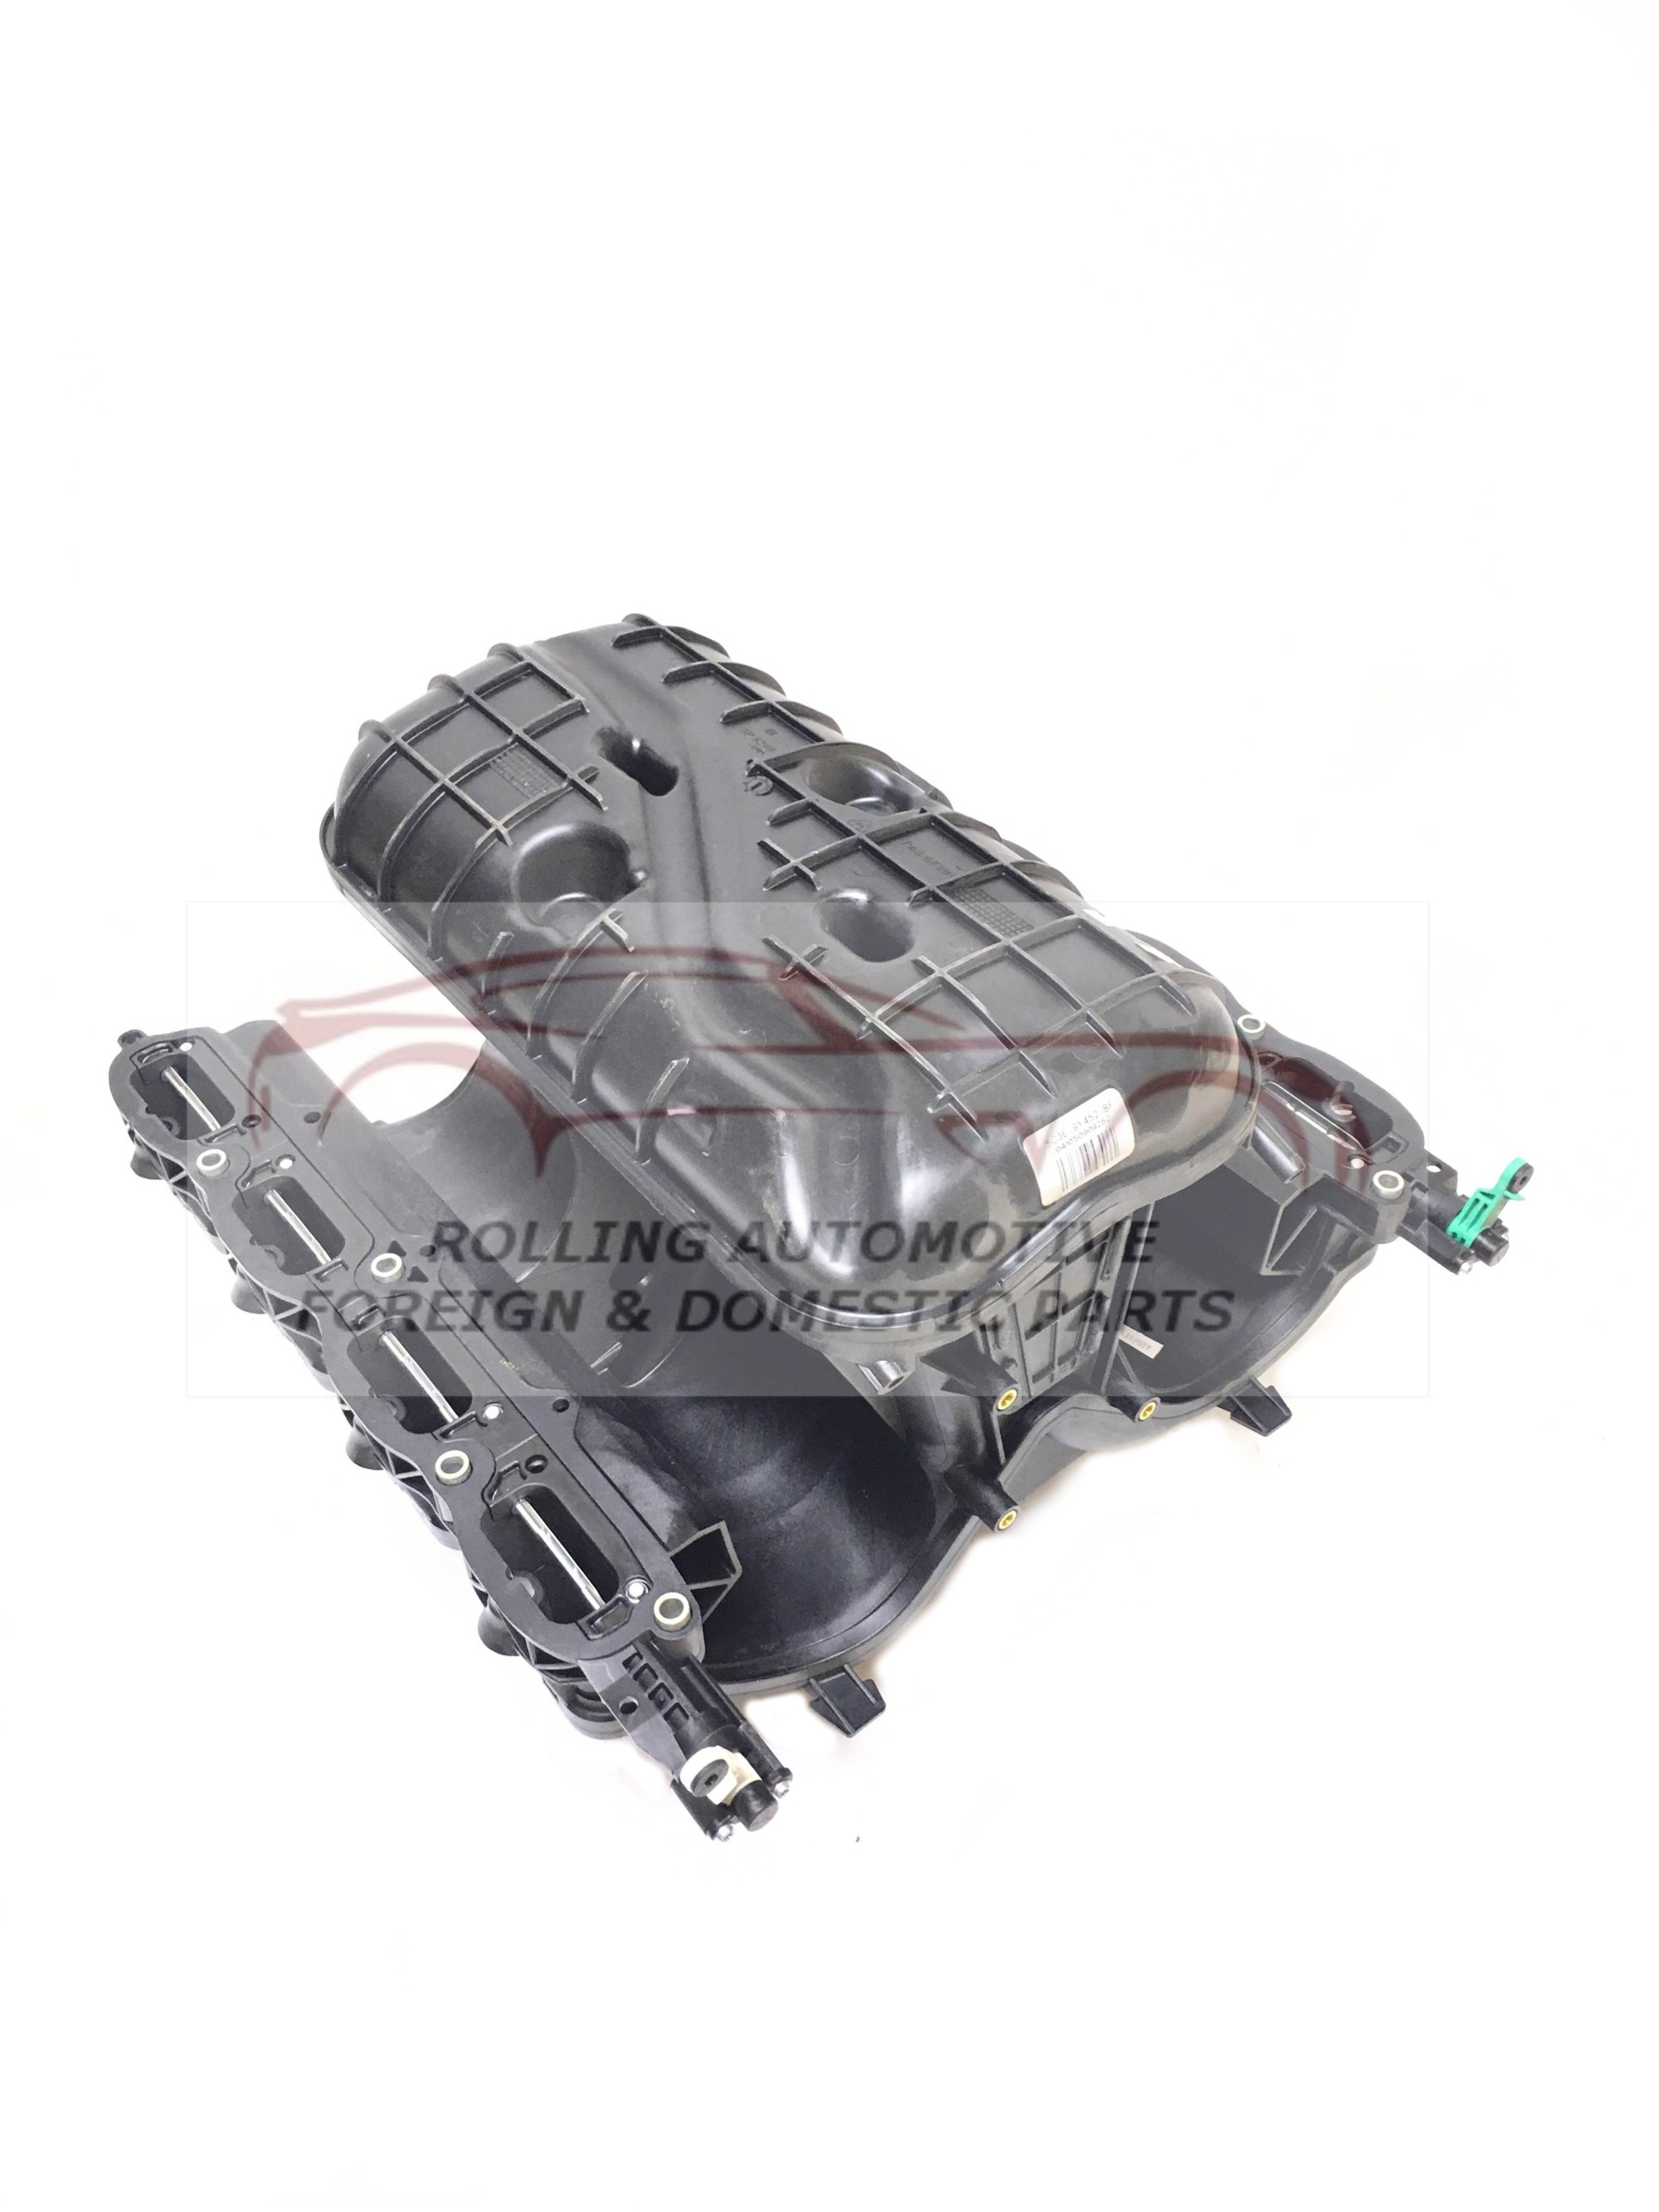 hight resolution of home fuel system ford 5 4l 3v intake manifold oem 5l1z9424a new 5c3e 9y452 bf